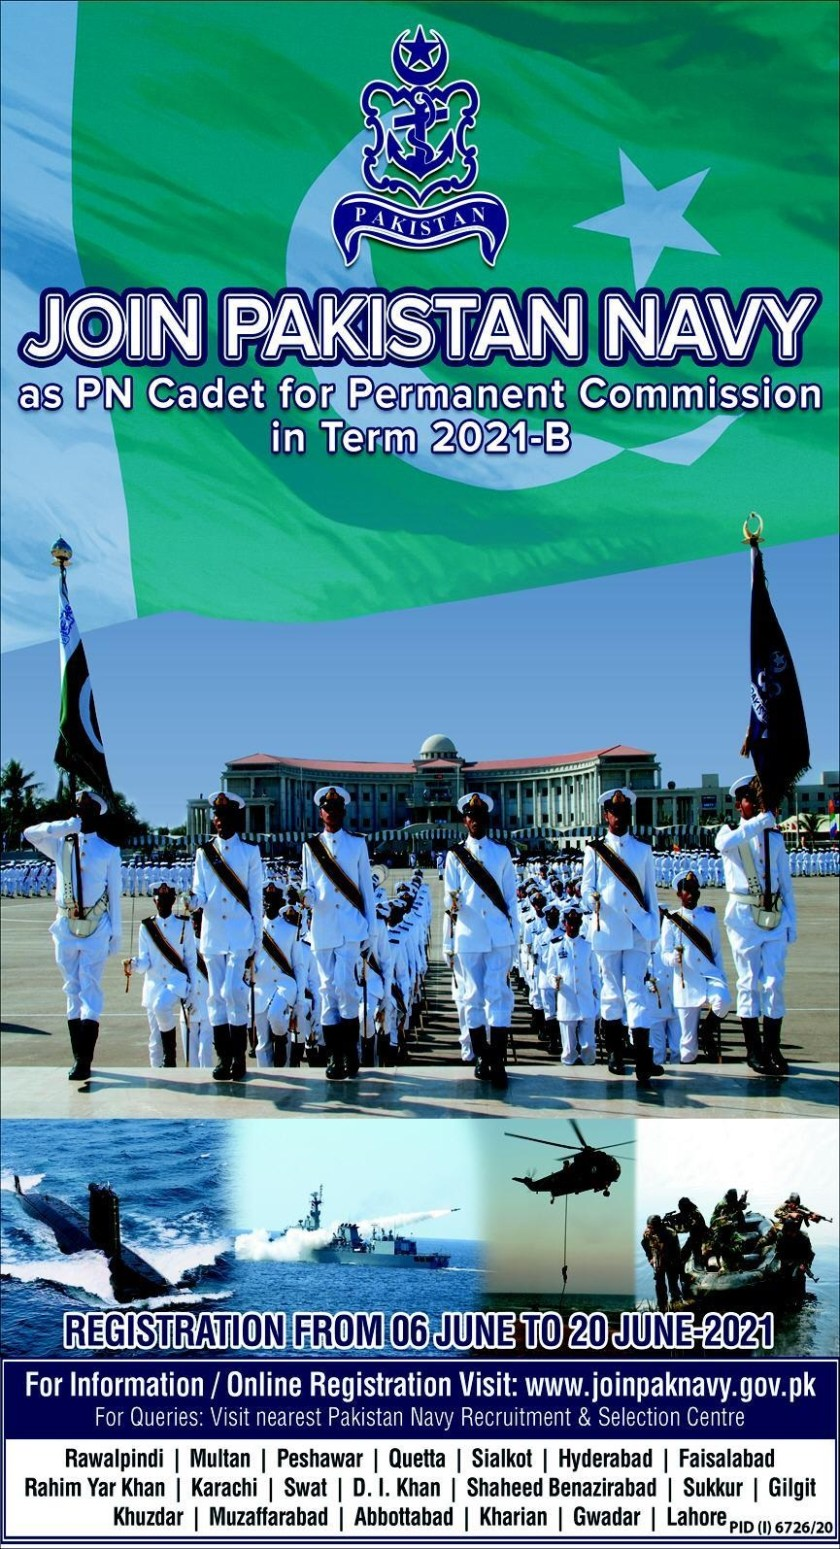 Join Pak Navy Jobs as PN Cadet for Permanent Commission B-2021